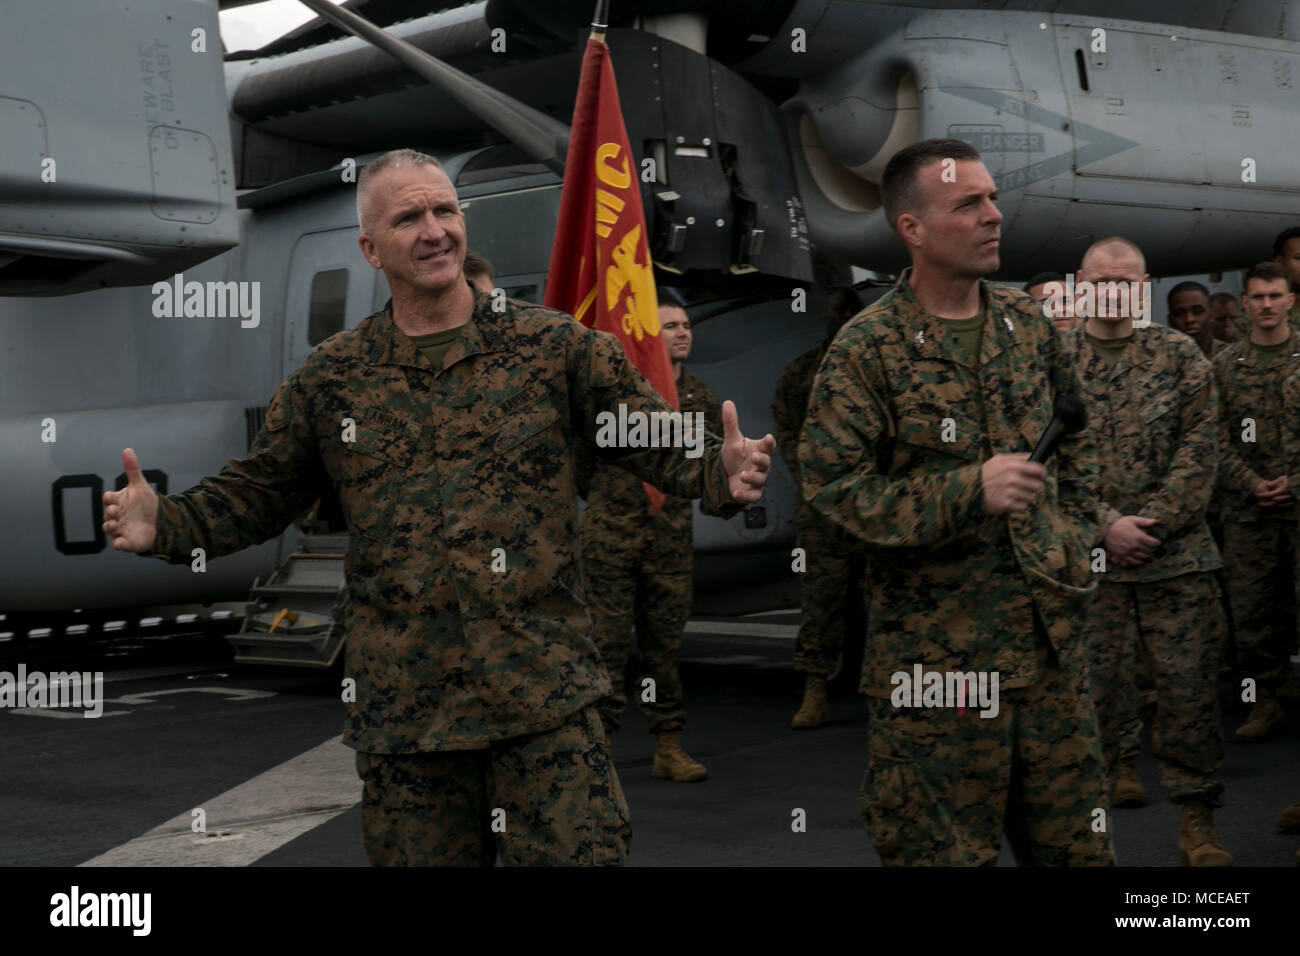 jim lanham sergeant major of the 31st marine expeditionary unit left and col tye r wallace commanding officer of the 31st meu speak to marines and